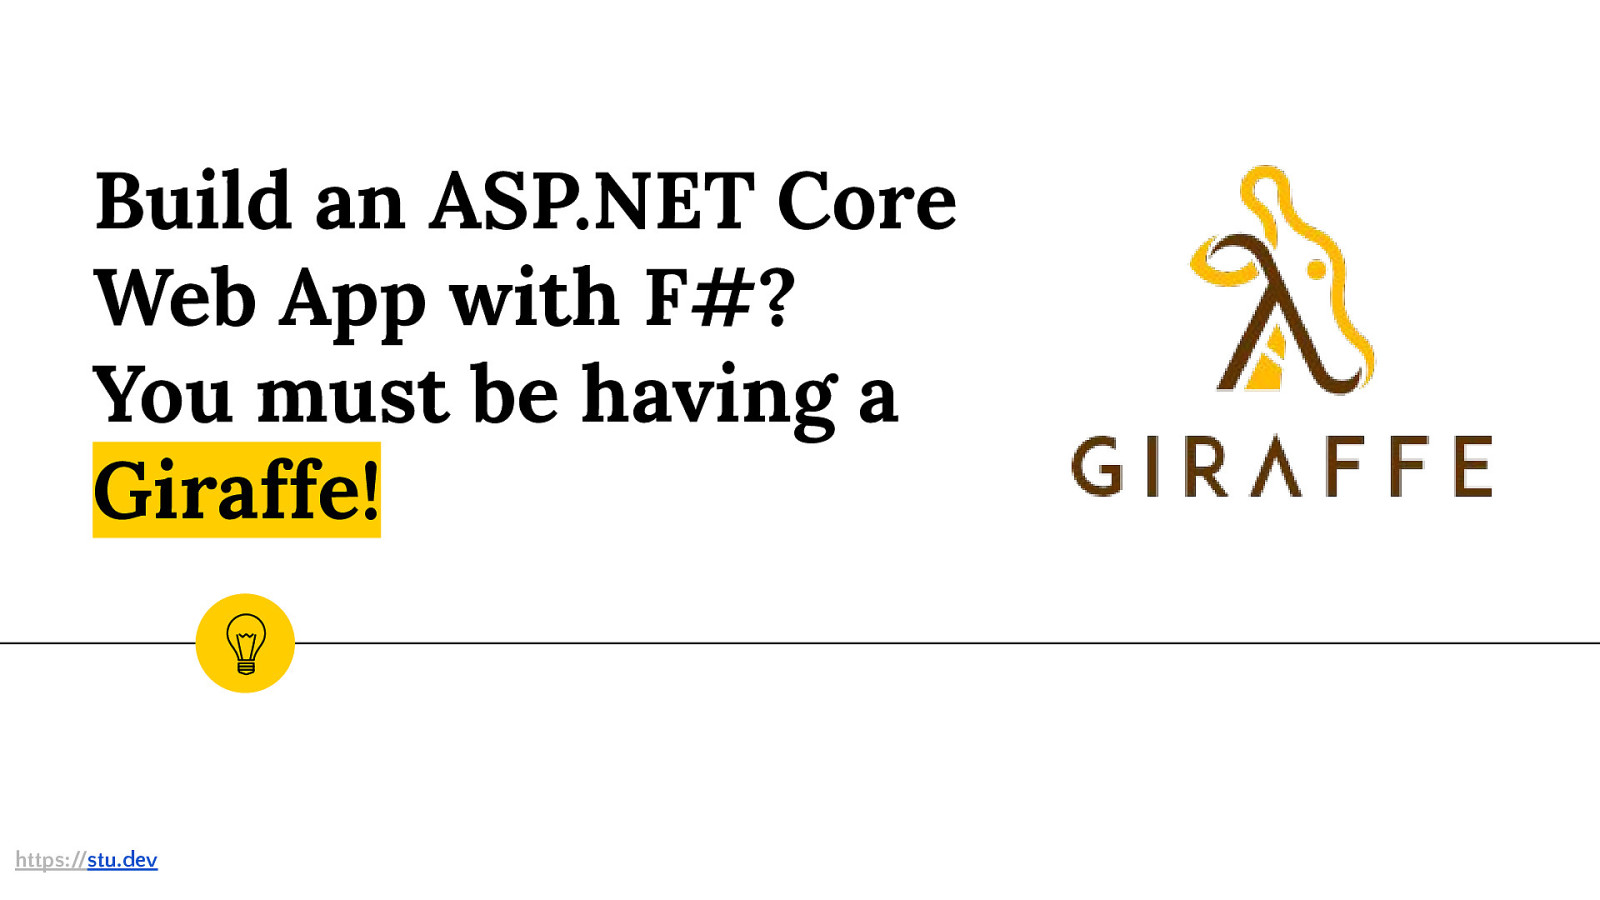 Build an ASP.NET Core Web App with F#? You must be having a Giraffe!